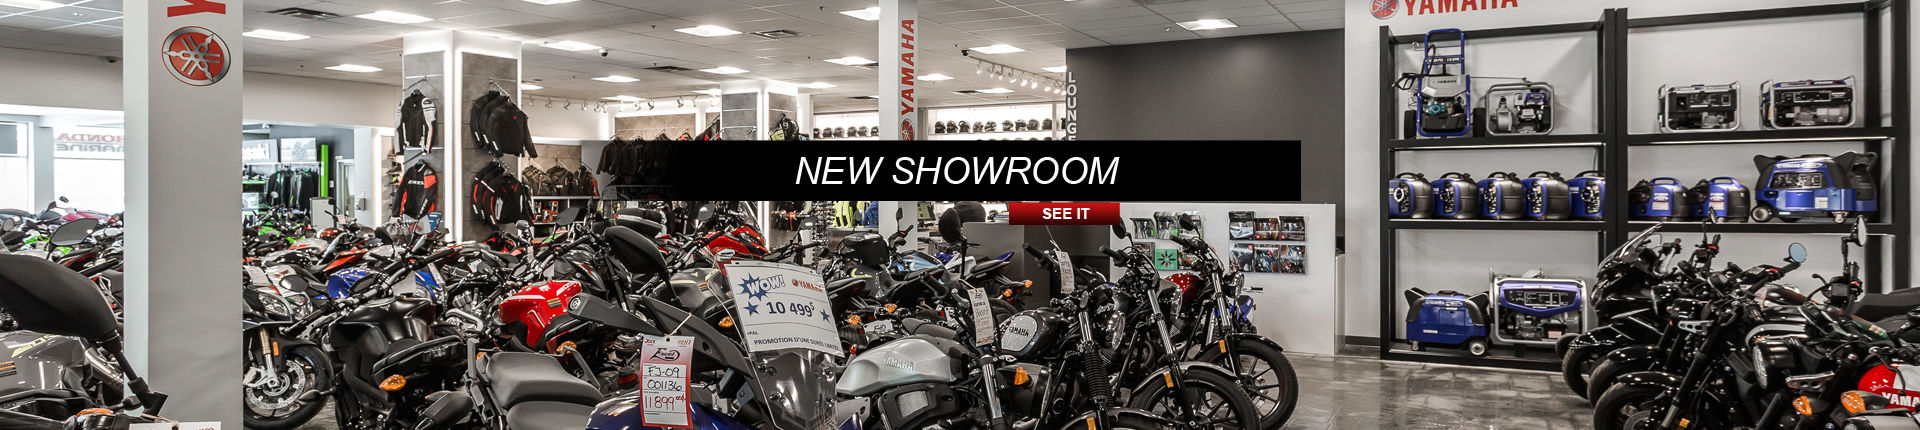 Our new showroom